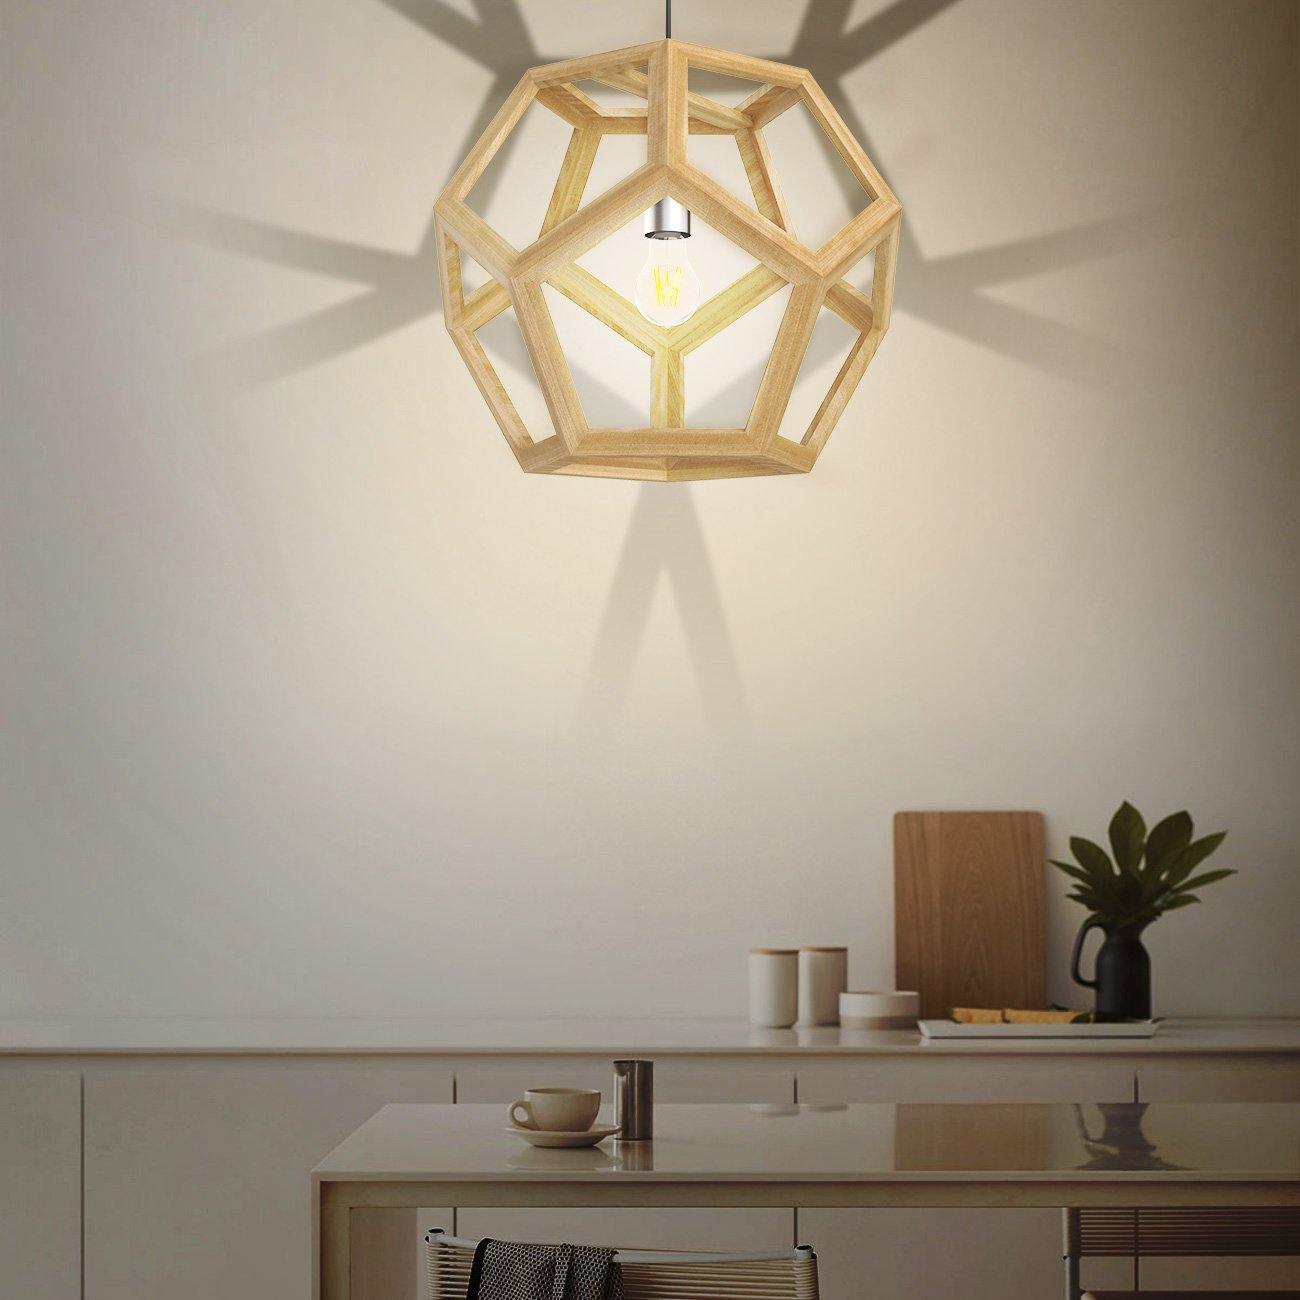 Tomons Hollow Design Wood Ceiling Pendant Lamp, Geometry Shape, E26/E27 Bulb Base, 60 Watts Incandescent Bulb, 12 Watts LED Bulb For Dining Room, Living Room, Bedroom, Study Room - PL1002 by tomons (Image #5)